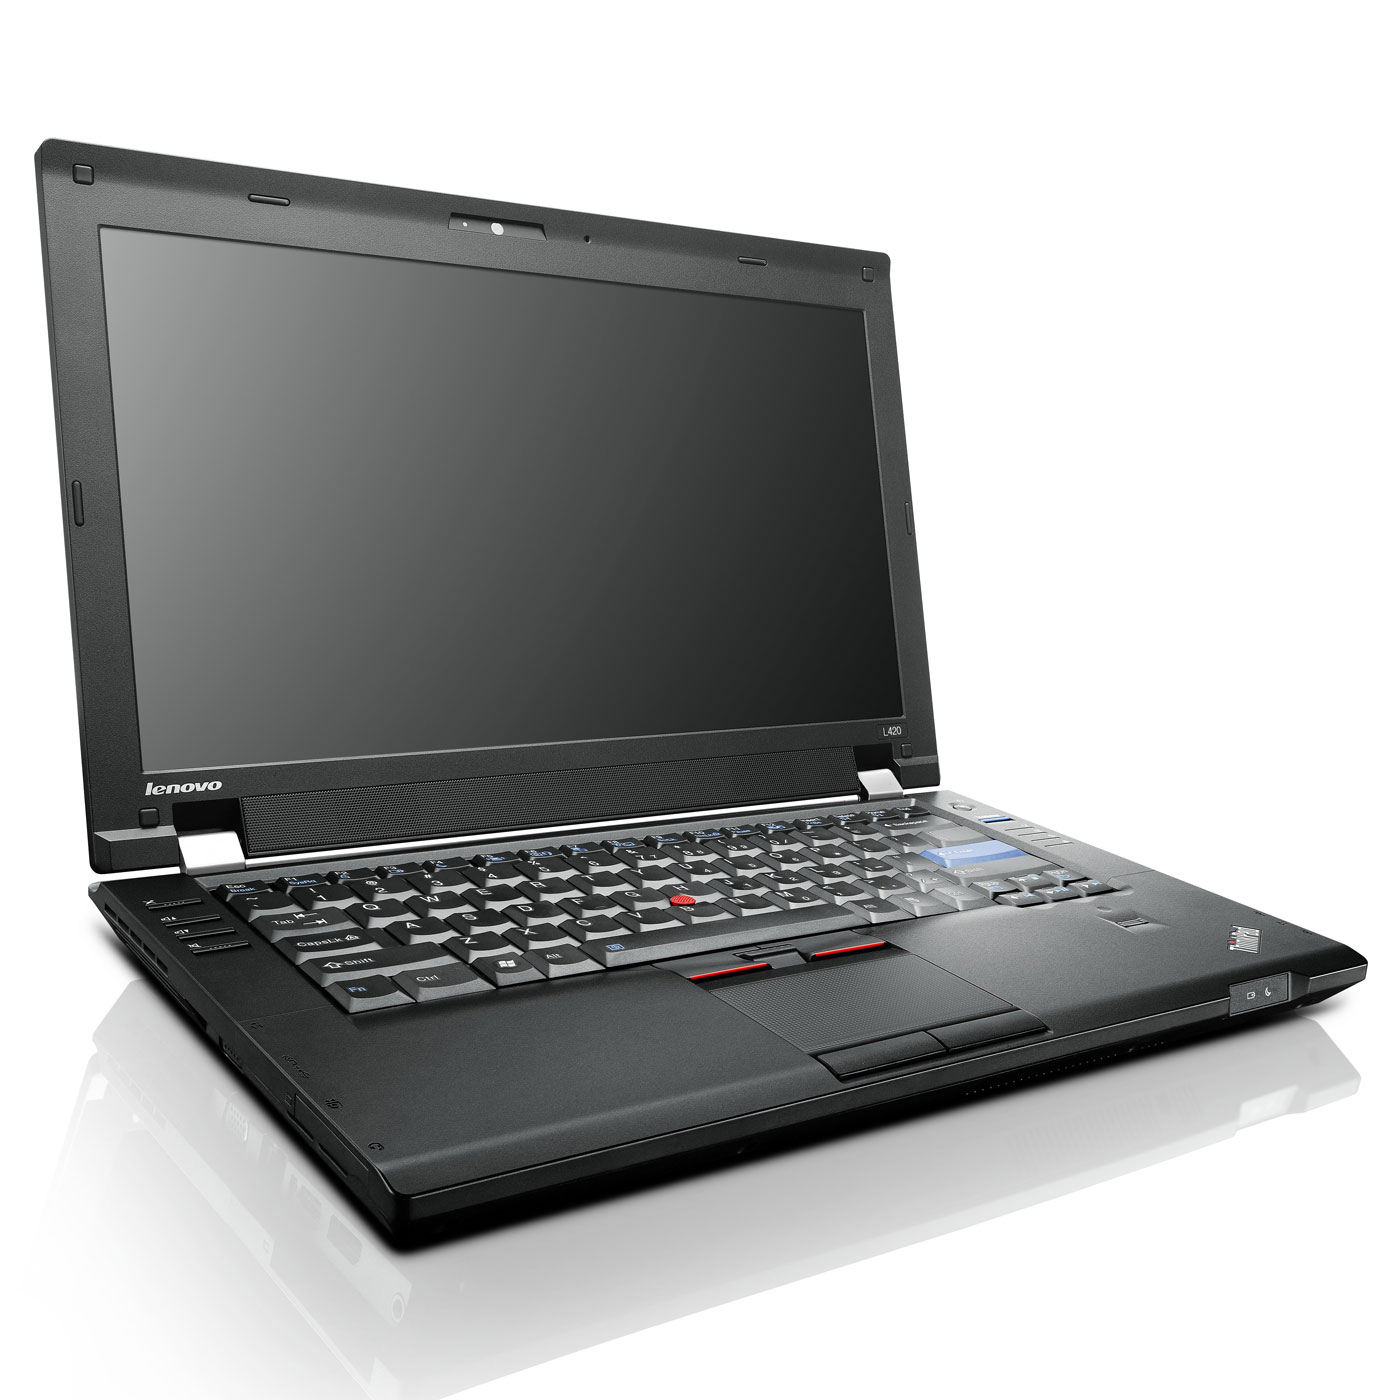 "PC portable Lenovo ThinkPad L420 (NYV4VFR) Intel Core i5-2410M 4 Go 320 Go 14"" LED Graveur DVD Wi-Fi N Webcam Windows 7 Professionnel 64 bits"